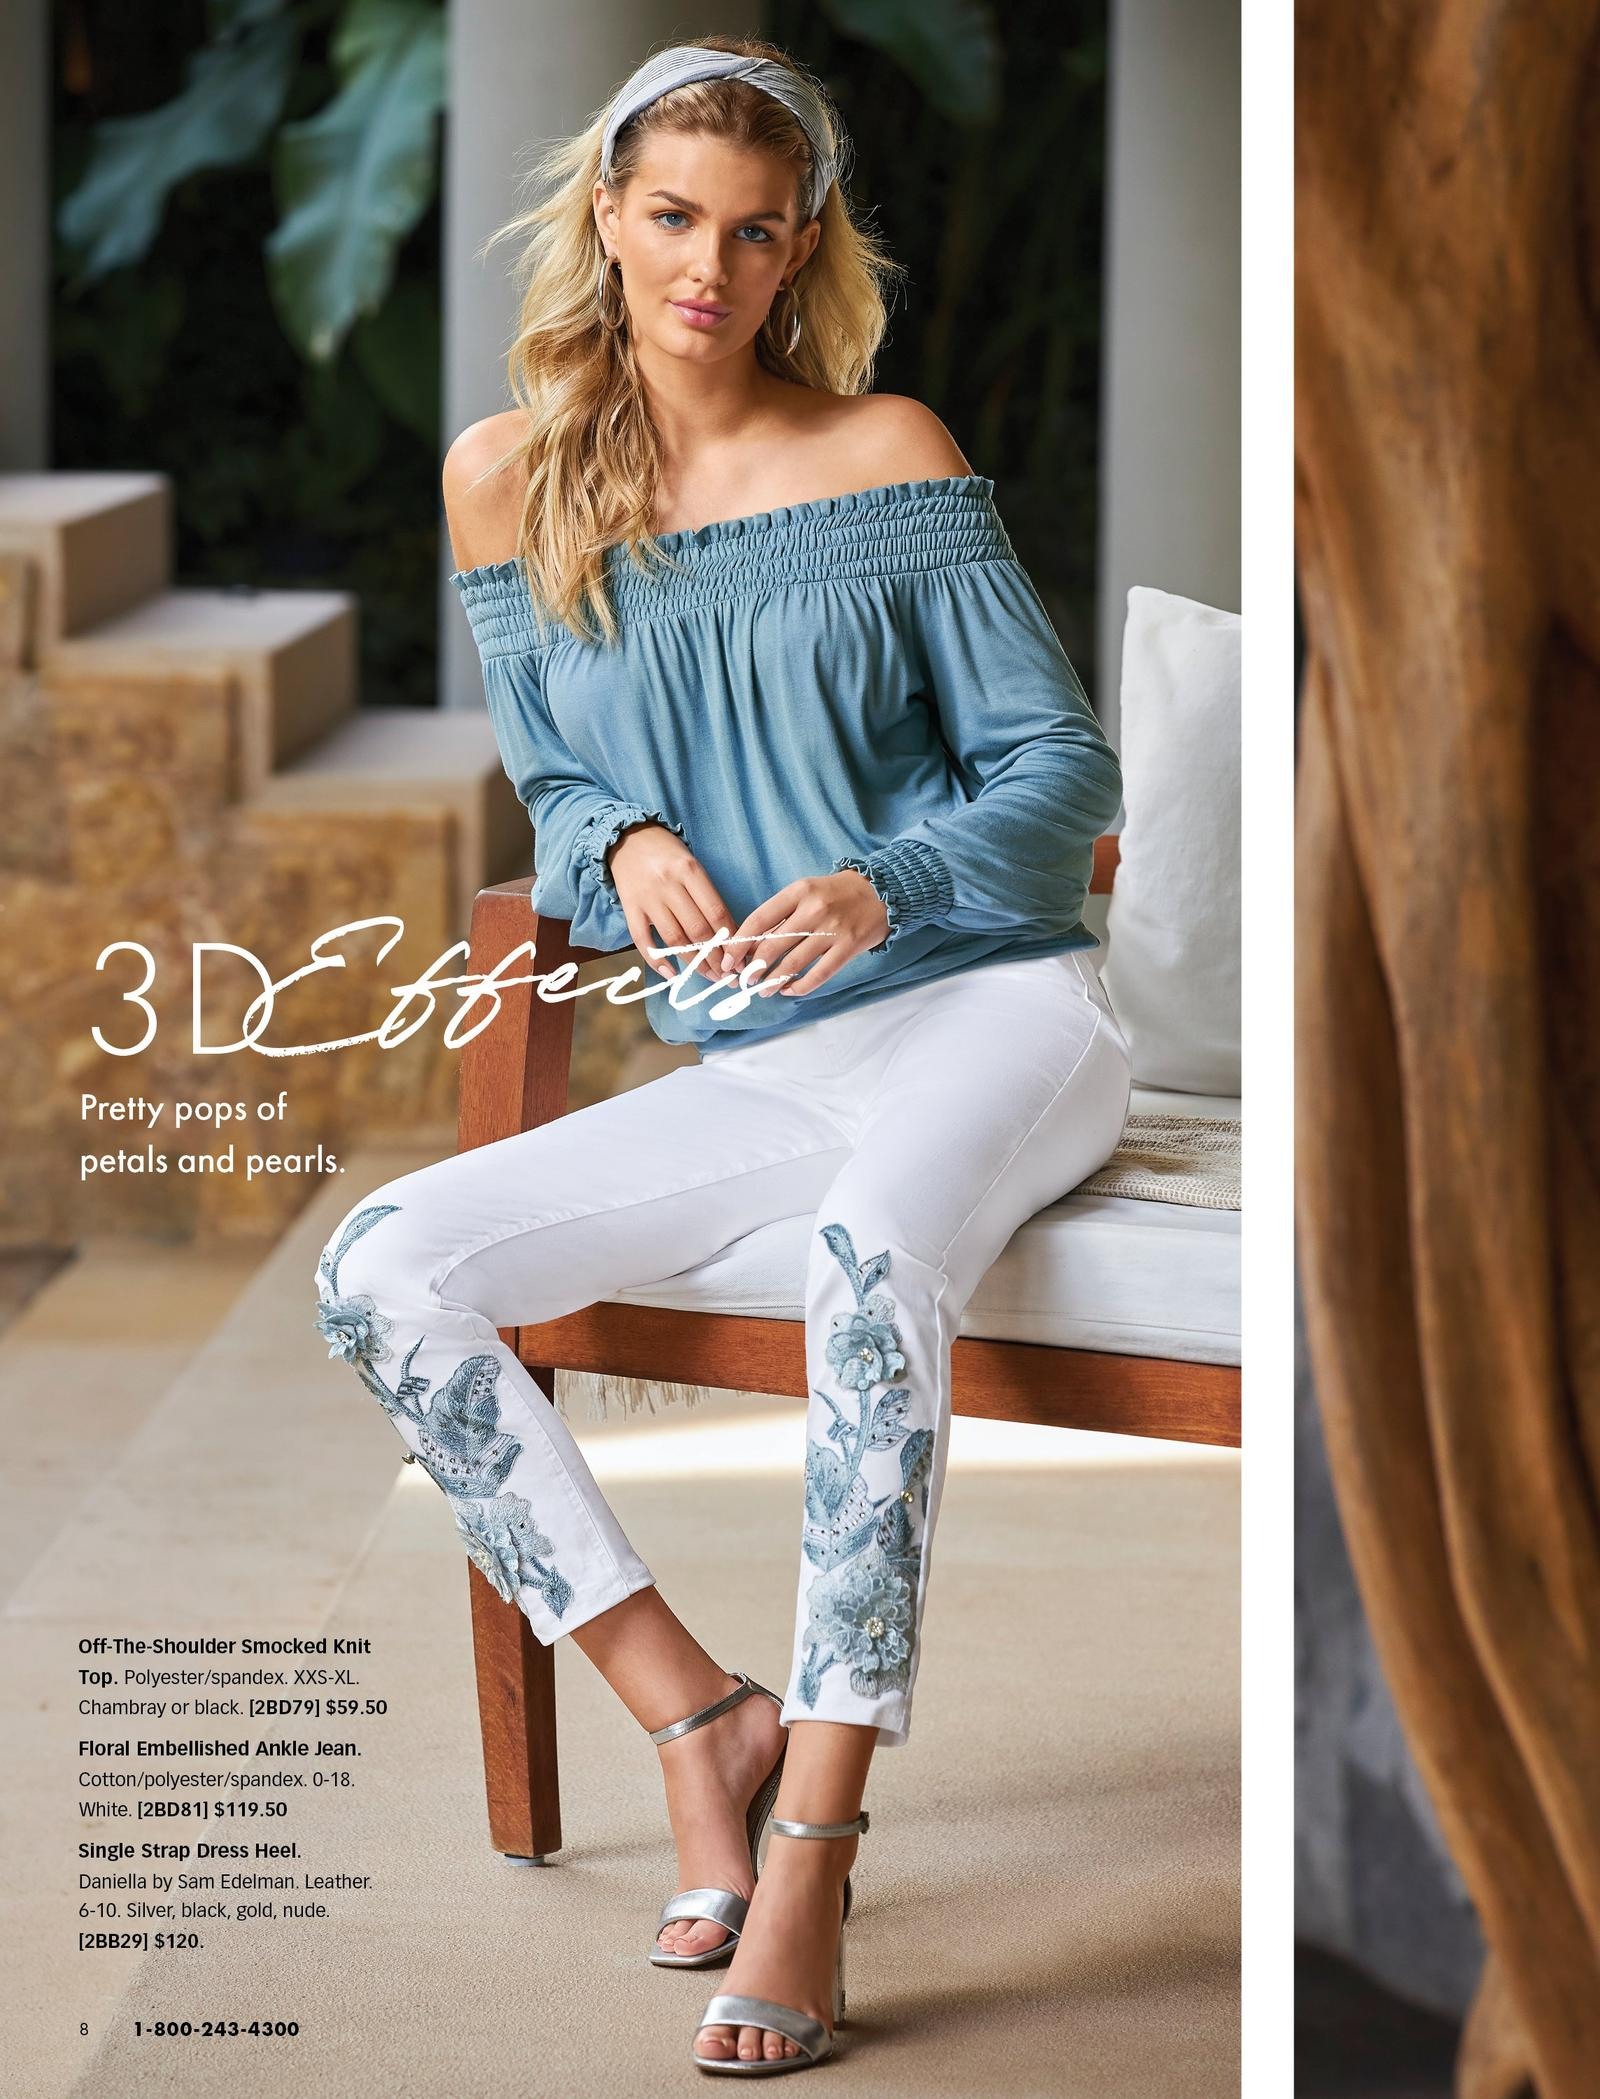 model wearing an off-the-shoulder chambray smocked long-sleeve top, white jeans with blue floral embellishments, silver single strap heels, and silver hoop earrings.